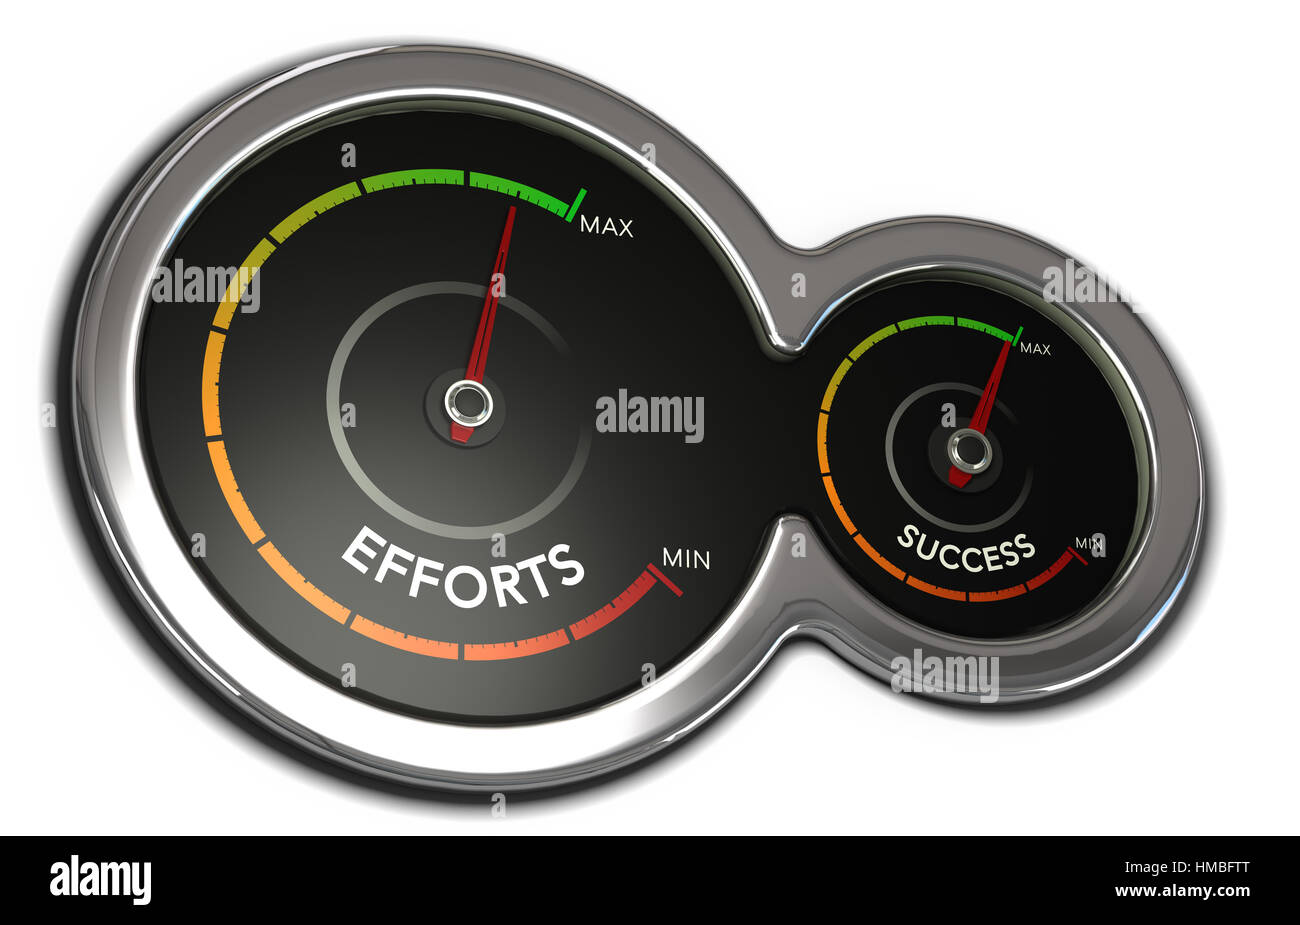 3D illustration of two dials with needles pointing the maximum. Motivation concept over white background. - Stock Image